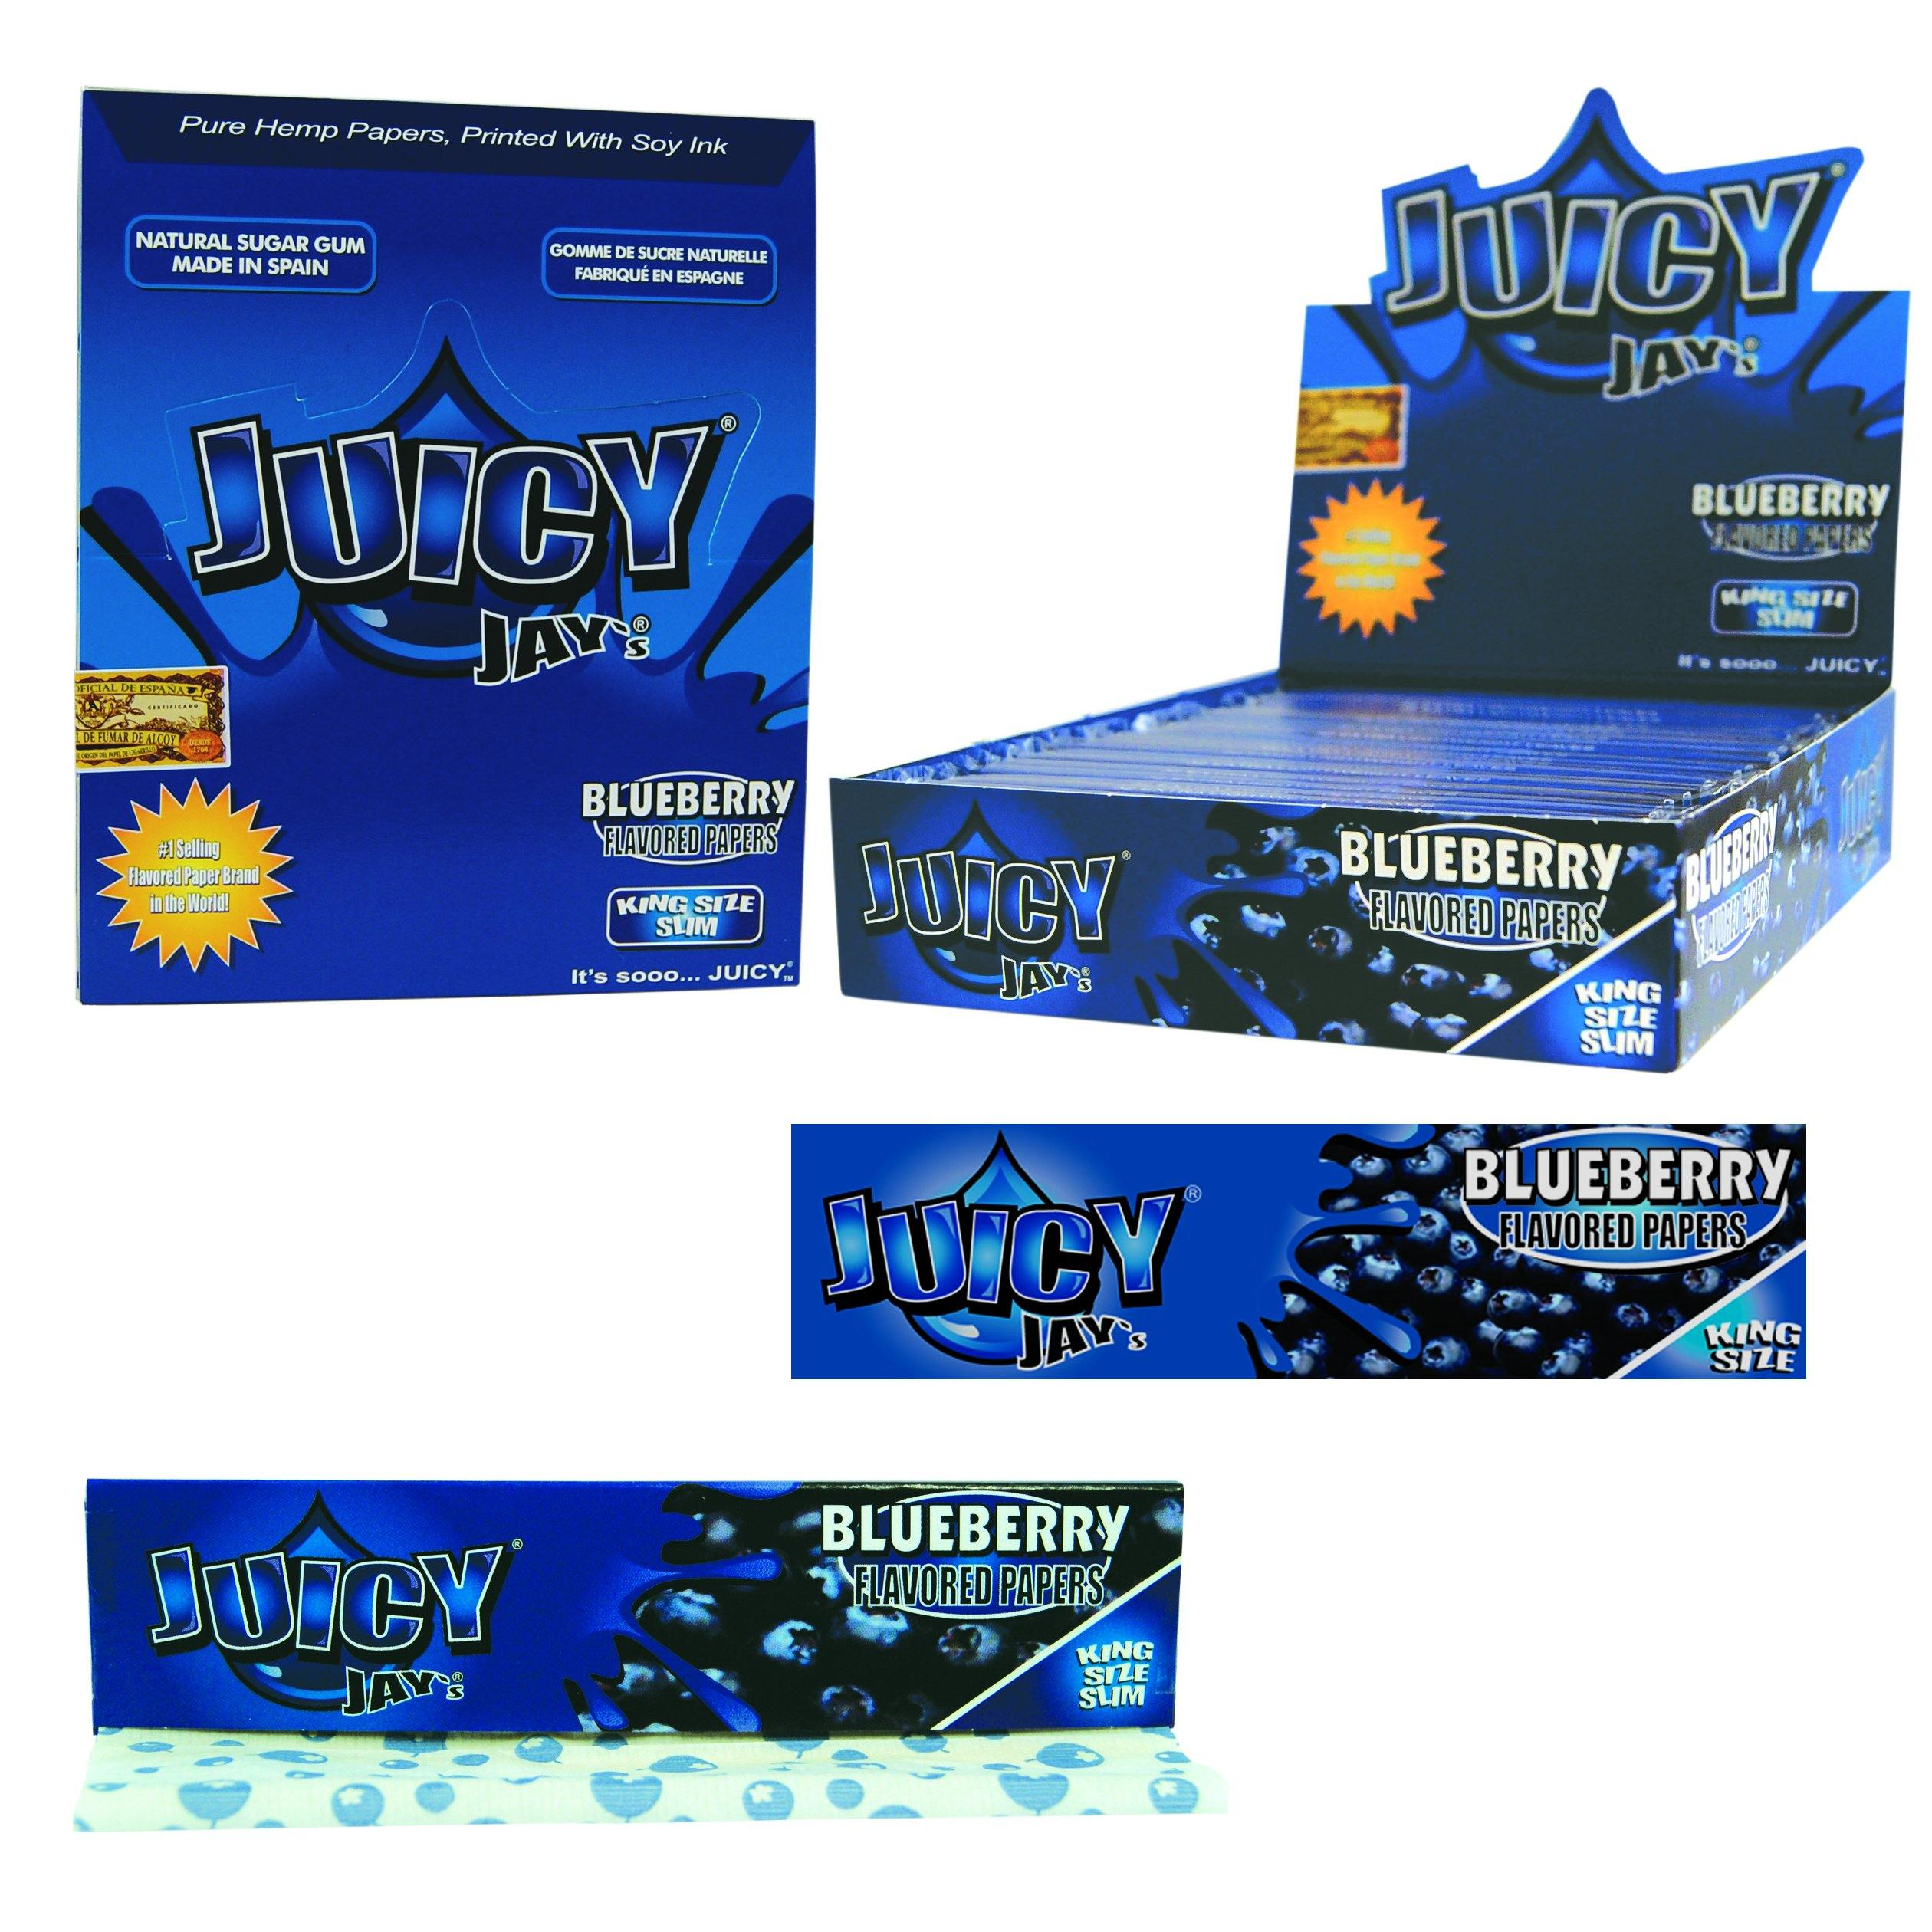 Juicy_Jays_Flavor_Flavour_King_Size_Rolling_Papers_Stoner_KS-Paper_Papier_Luxembourg_cbd-lux_CBD-Store-Shop_Blueberry_blaubeere_myrtille